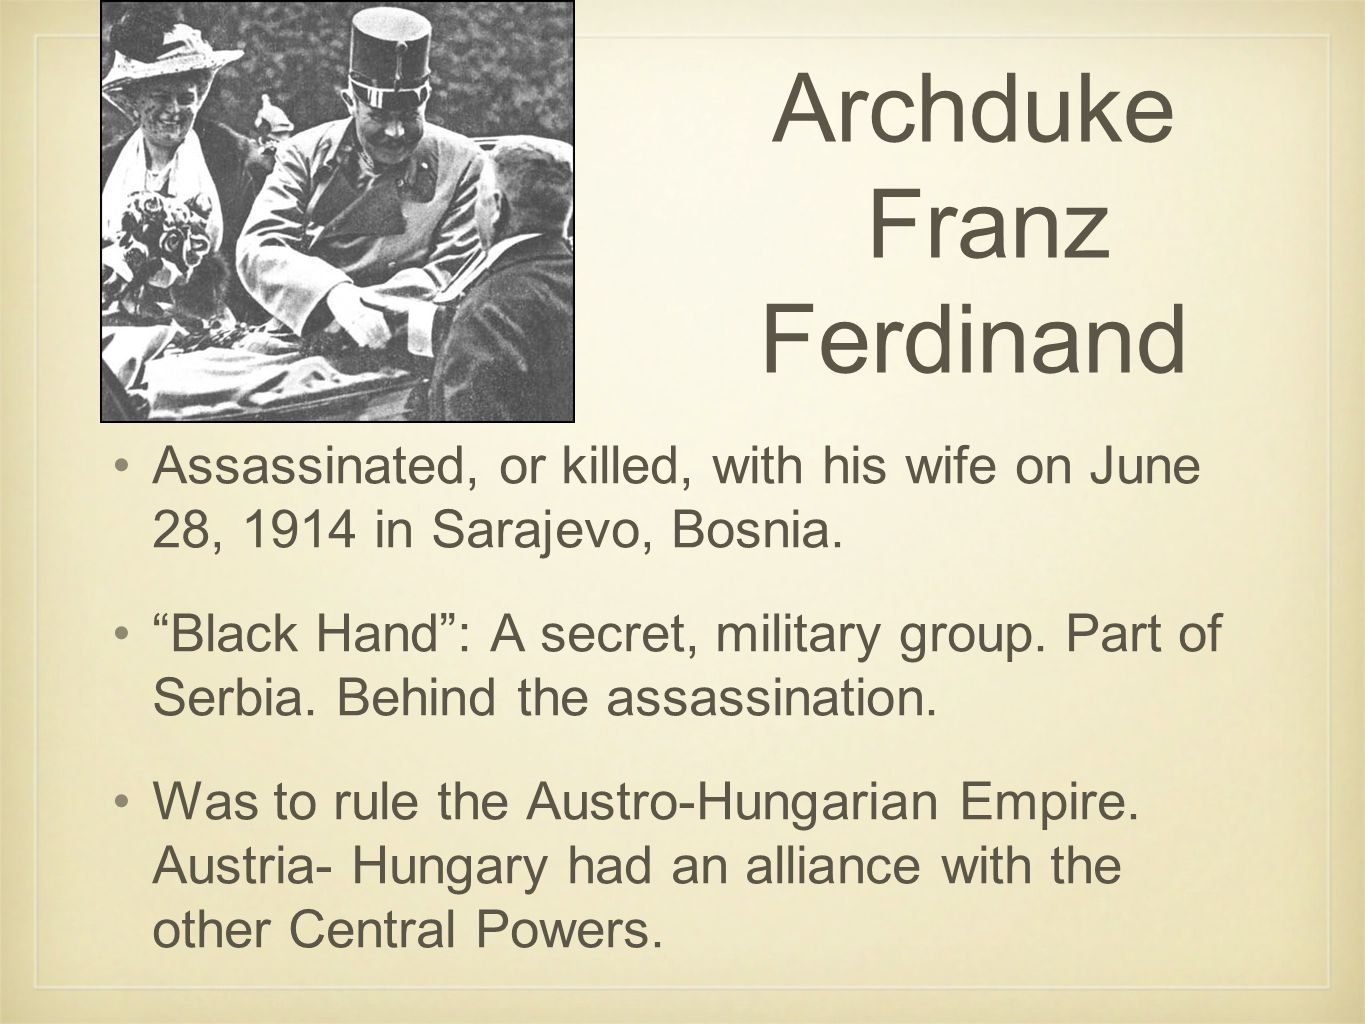 Archduke Franz Ferdinand Assassinated, or killed, with his wife on June 28, 1914 in Sarajevo, Bosnia.